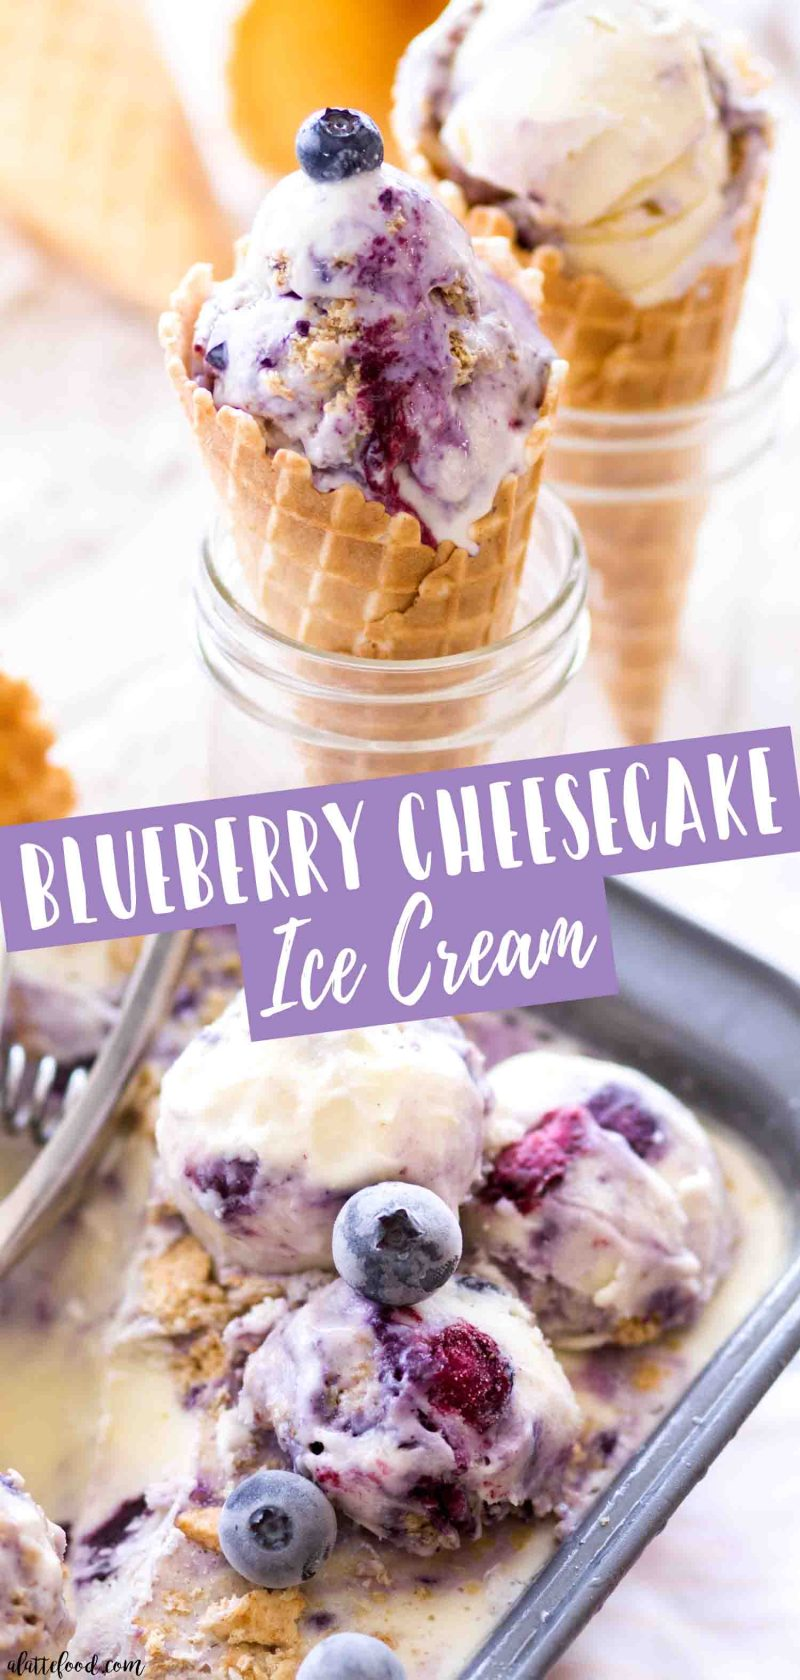 Homemade blueberry cheesecake ice cream is layers of cream cheese custard, blueberry pie filling and graham cracker crumbs.